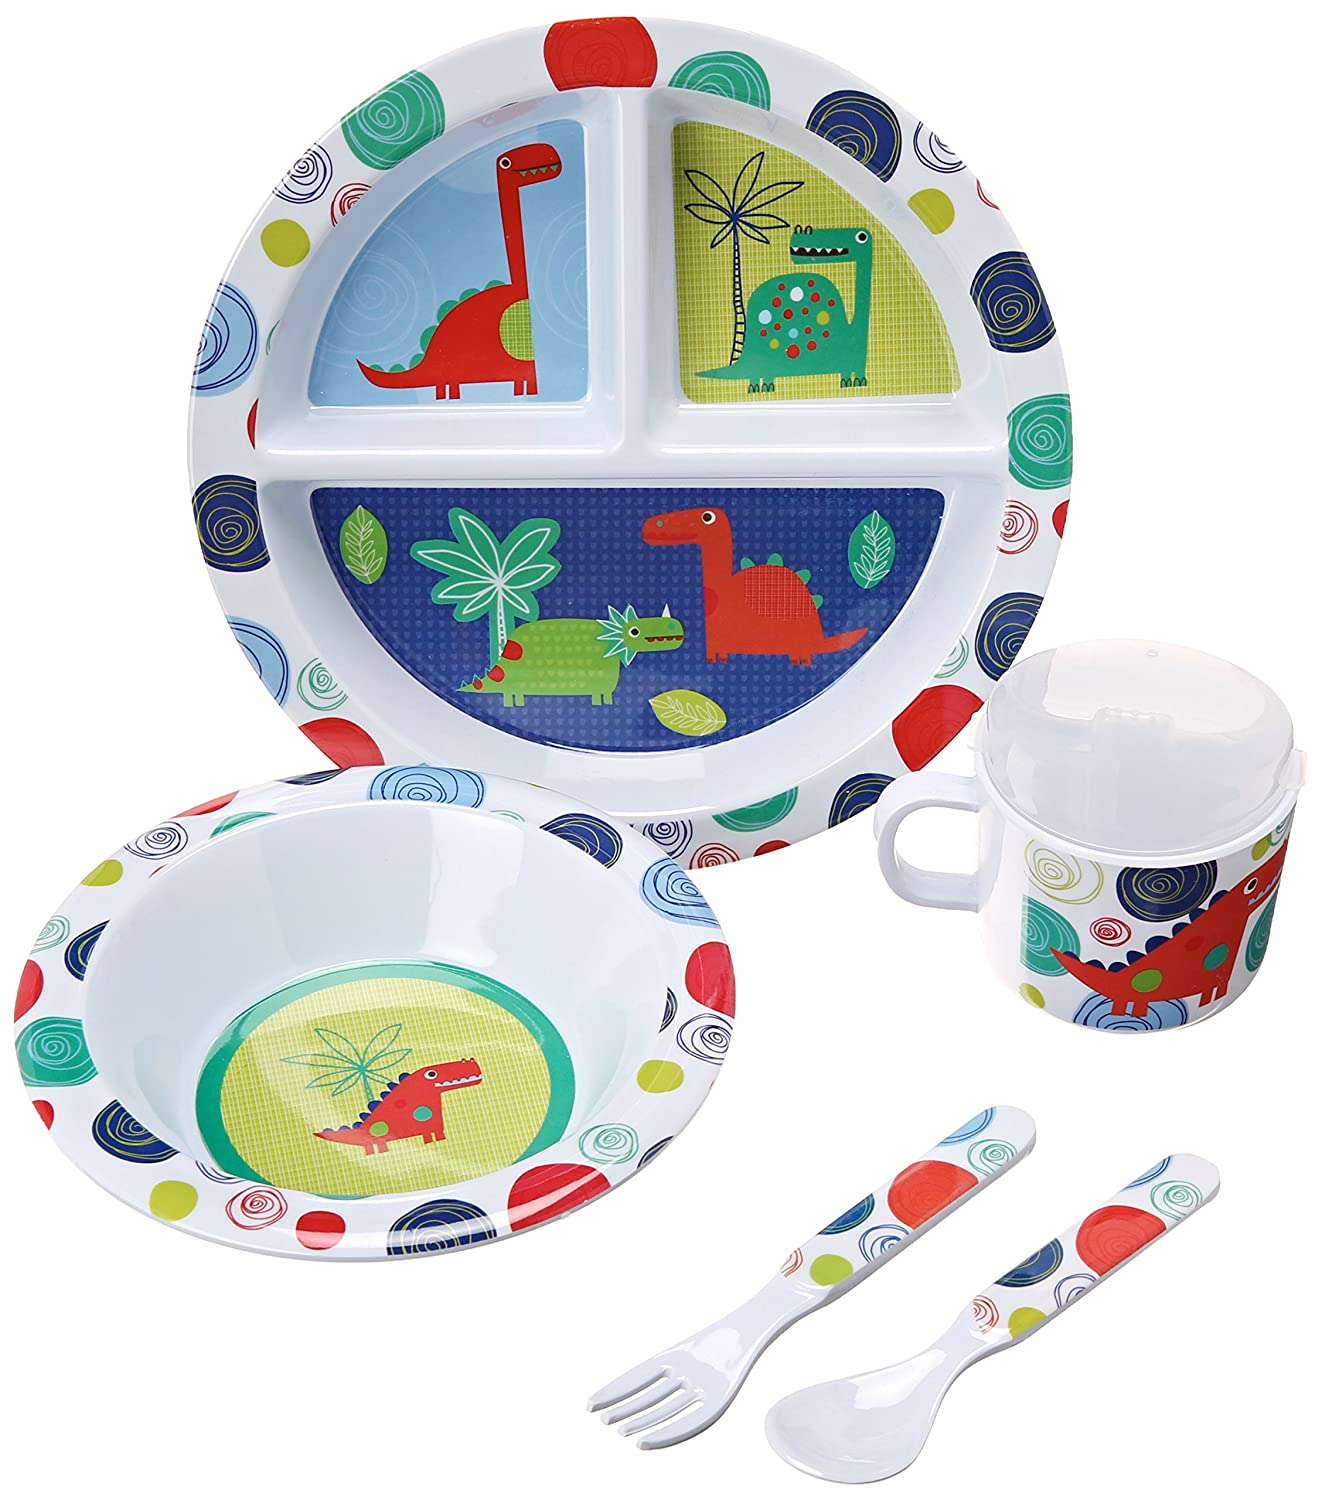 Amazon.com  C.R. Gibson 5 Piece Kids Dinnerware Set FDA Approved Melamine BPA Free Dishwasher Safe- Dinosaur Friends  Baby  sc 1 st  Amazon.com & Amazon.com : C.R. Gibson 5 Piece Kids Dinnerware Set FDA Approved ...